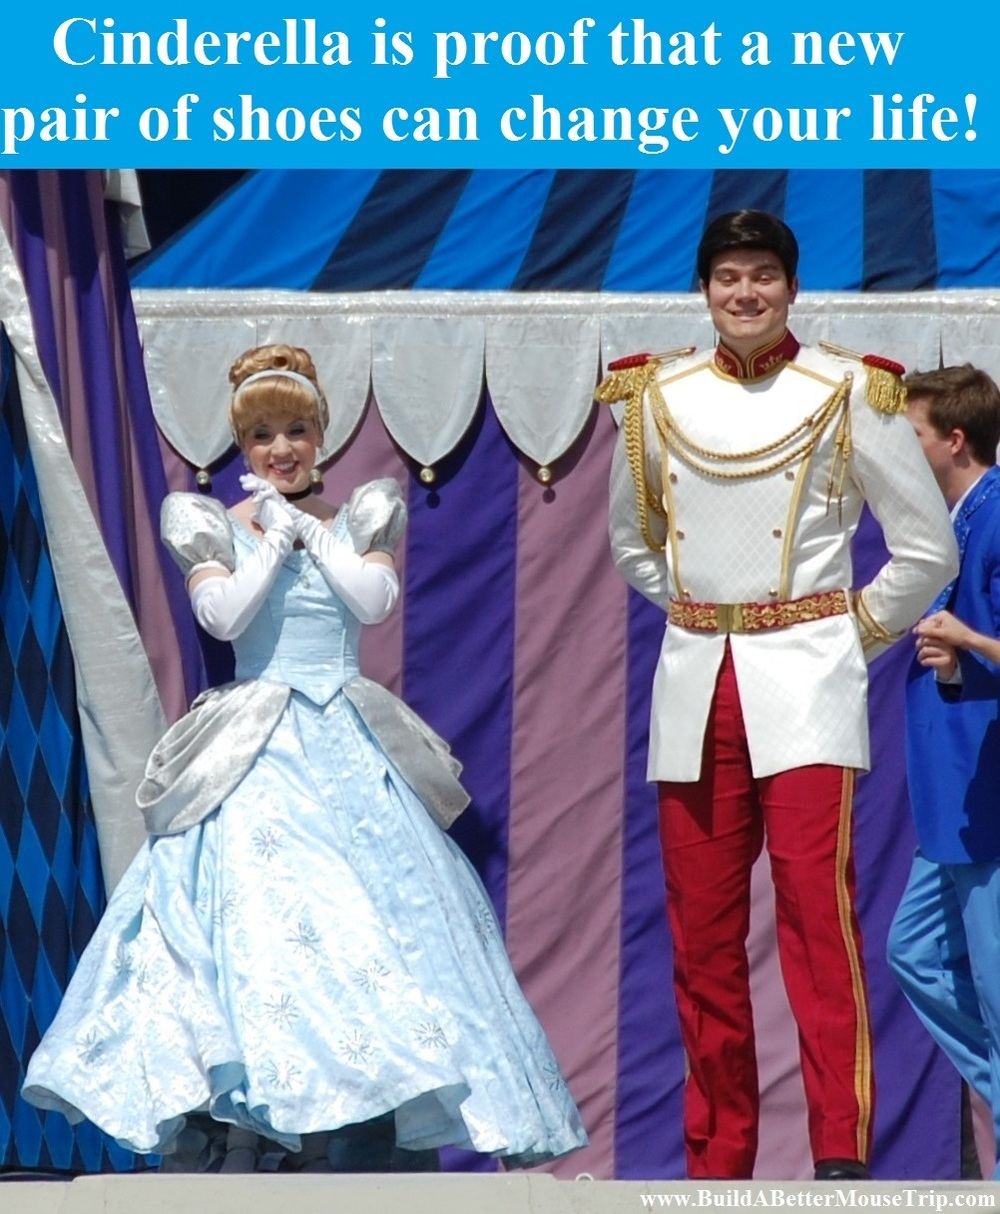 Cinderella proves that a new pair of shoes can change your life.